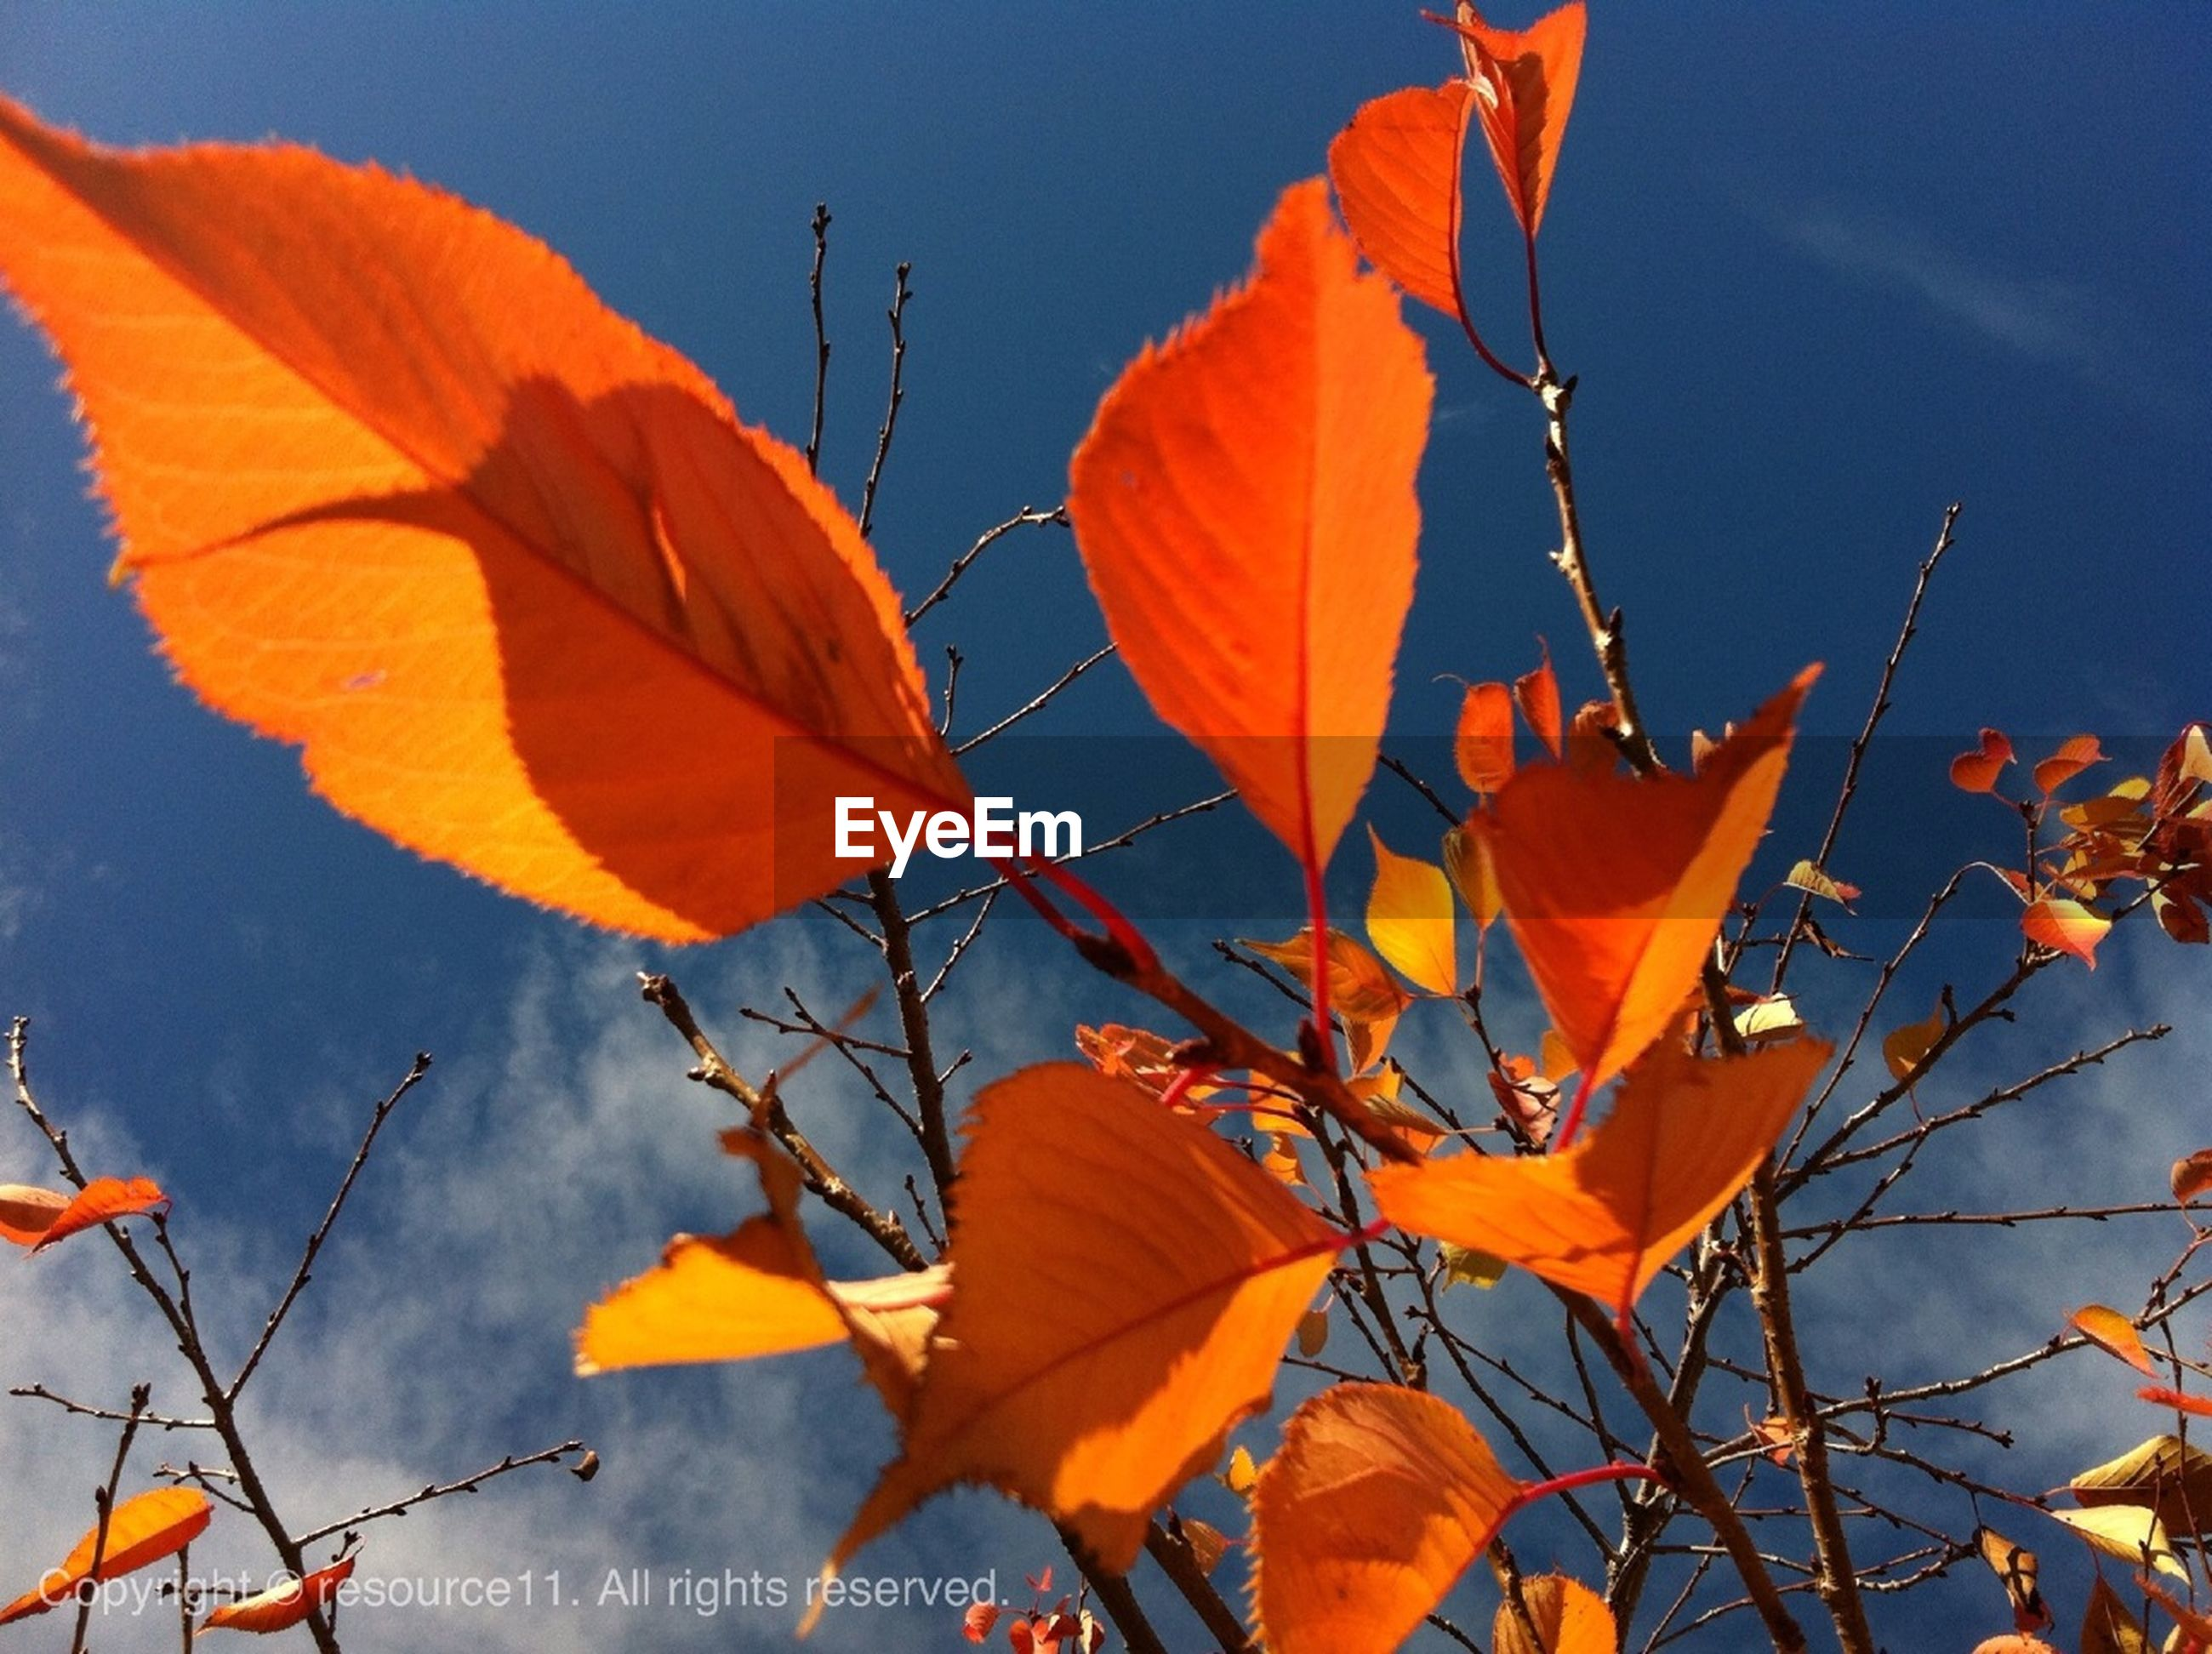 leaf, autumn, change, orange color, low angle view, season, leaves, nature, beauty in nature, branch, growth, sky, close-up, maple leaf, blue, red, leaf vein, focus on foreground, fragility, day